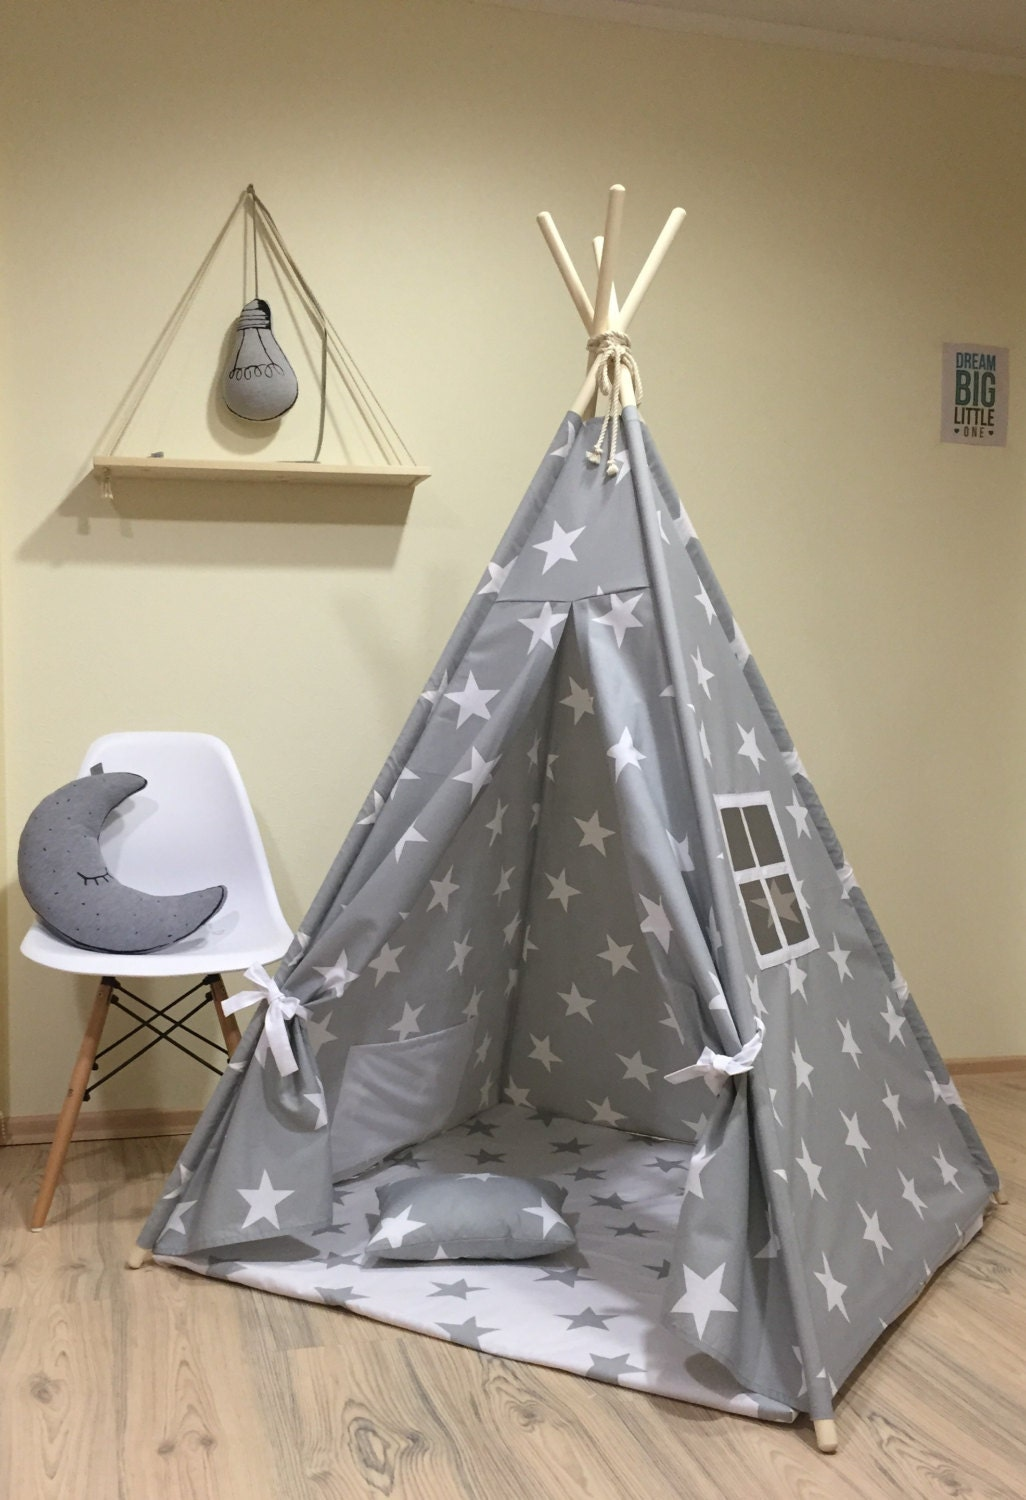 tipi play tent teepee cozy grey stars kids teepee play tent. Black Bedroom Furniture Sets. Home Design Ideas